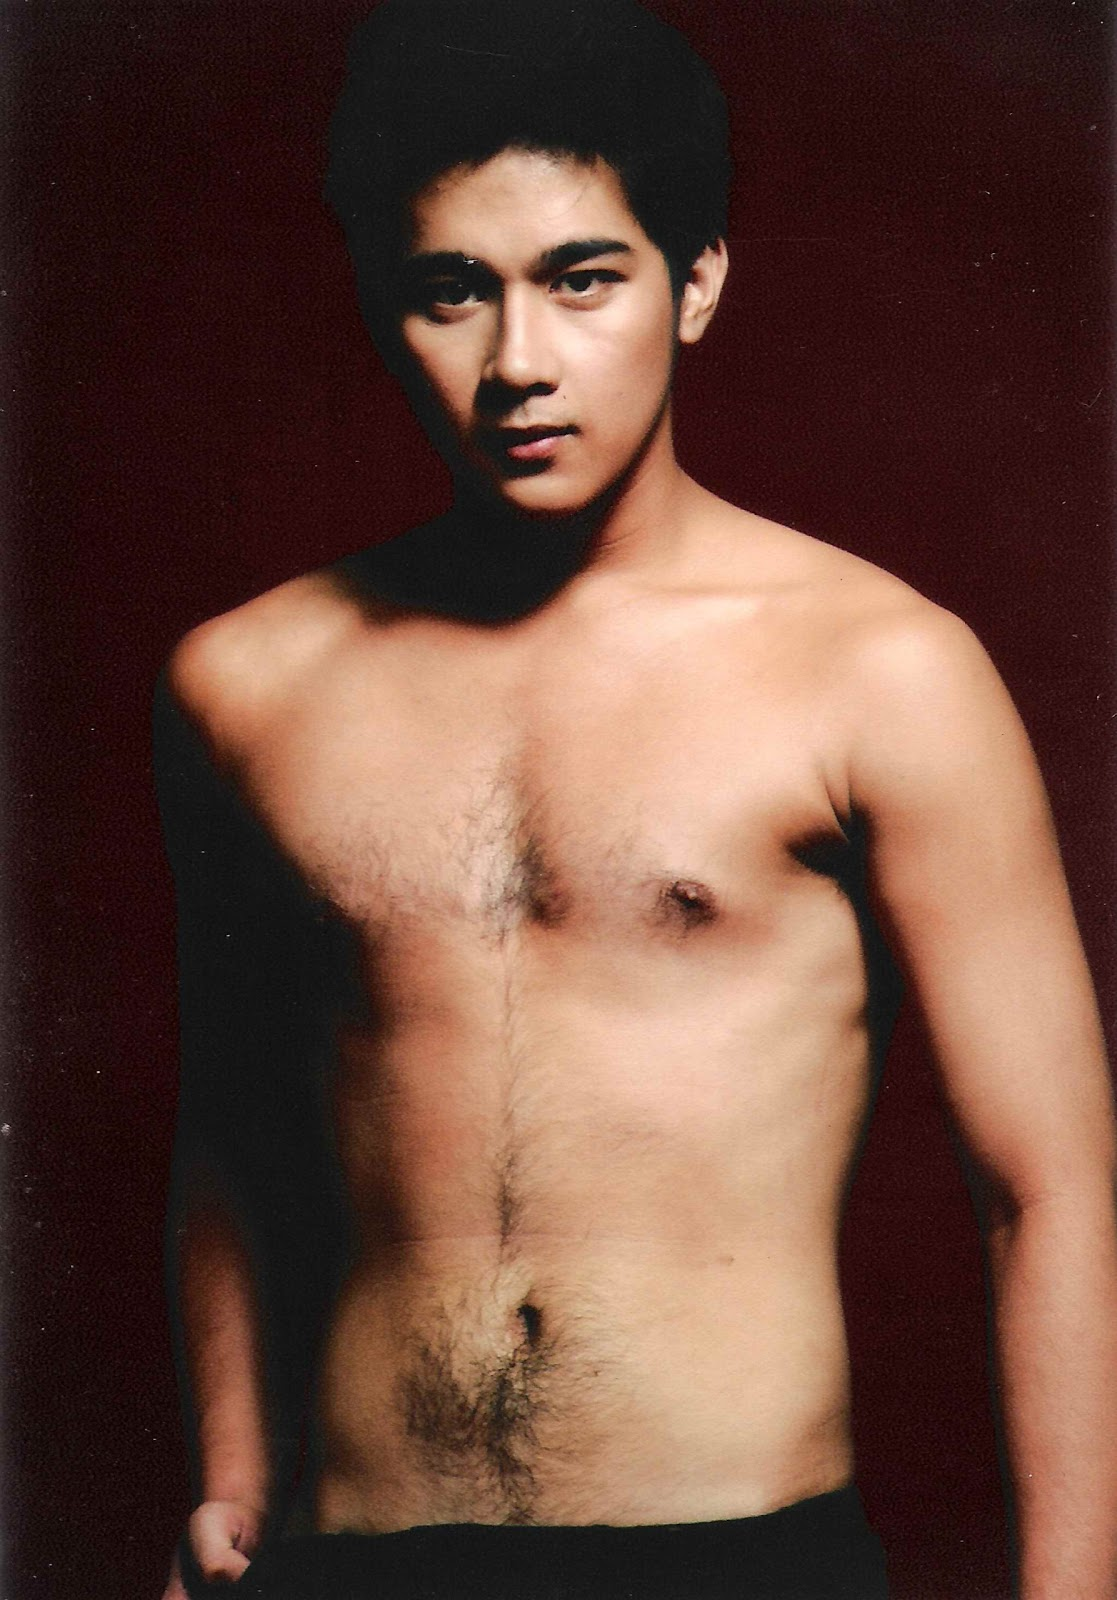 pinoy hunk actor dick pic